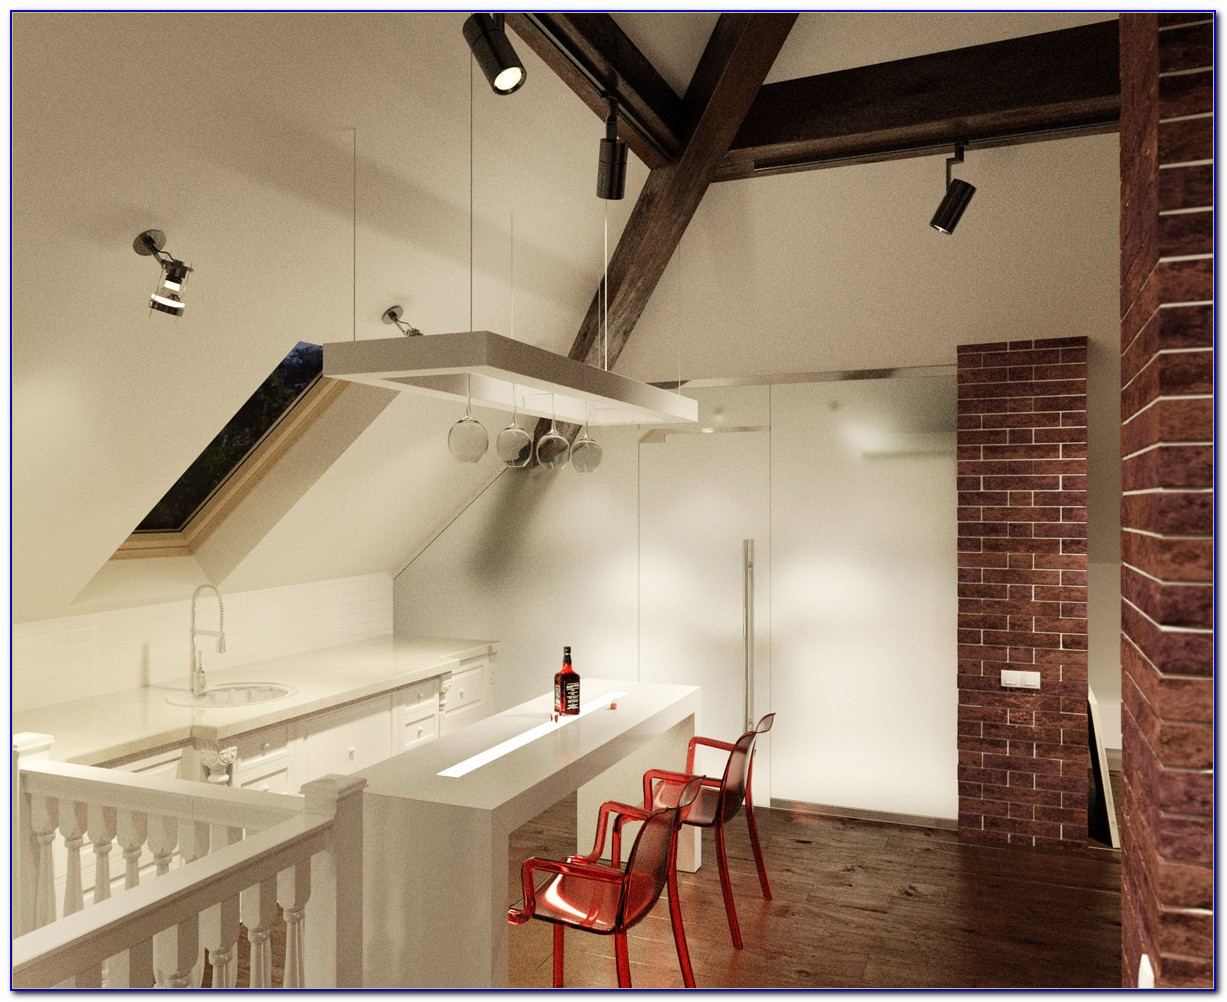 Recessed Lights For Slanted Ceilings